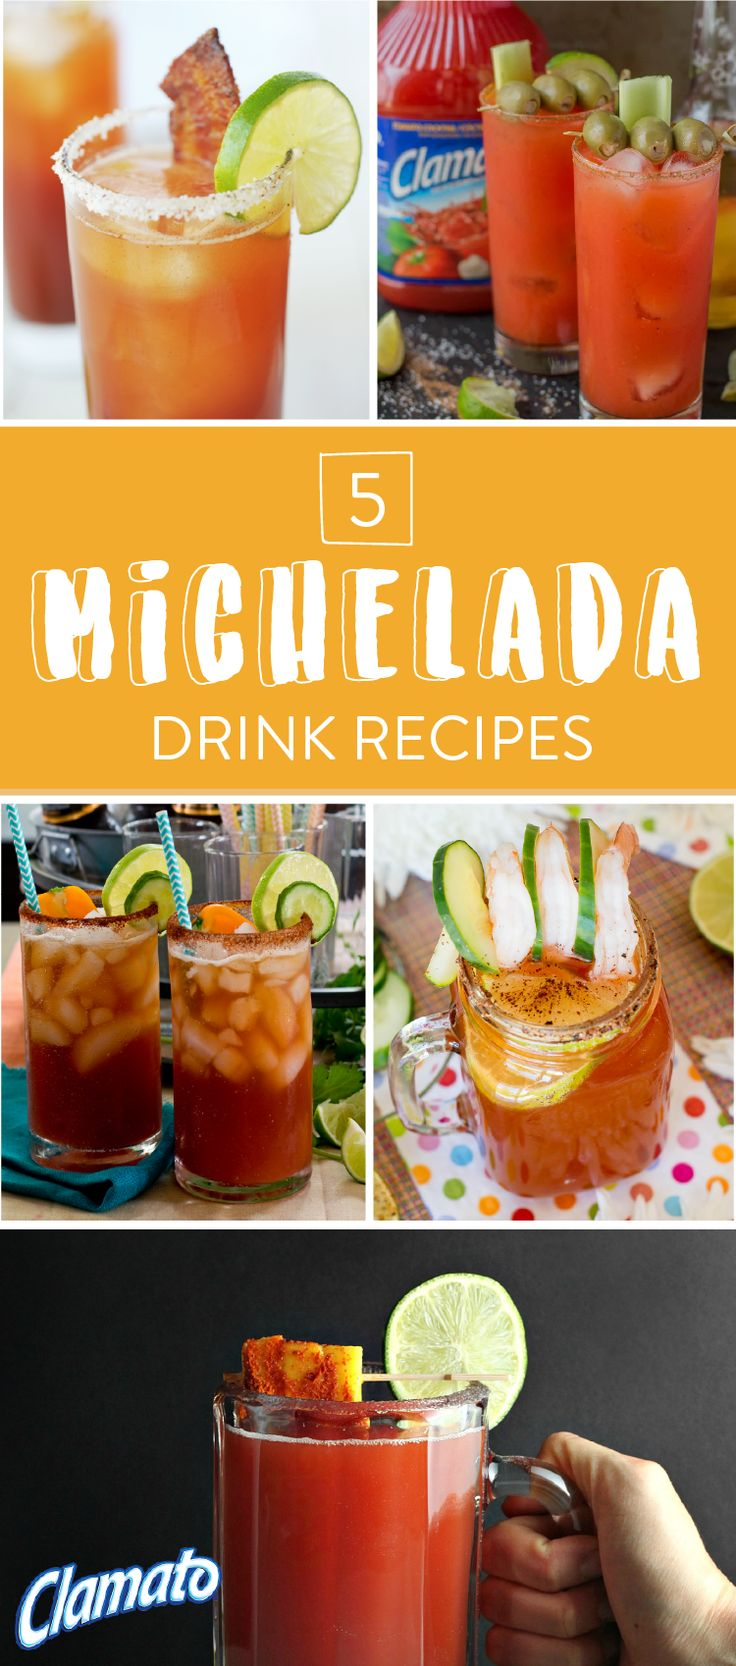 If you're anything like us, sweet and savory is your favorite flavor combination. So, take a sip of this Mexican Michelada recipe with Spicy Mangos to enjoy a delicious summer cocktail. Made with Clamato®, Mexican beer, hot sauce, Worcestershire, fresh mangos, cayenne pepper, and ice, this fruity drink has a bit of kick and can be served all summer long. Pick up all the items you need at your local Albertsons, Safeway, Pavilions, Tom Thumb, or Vons store.